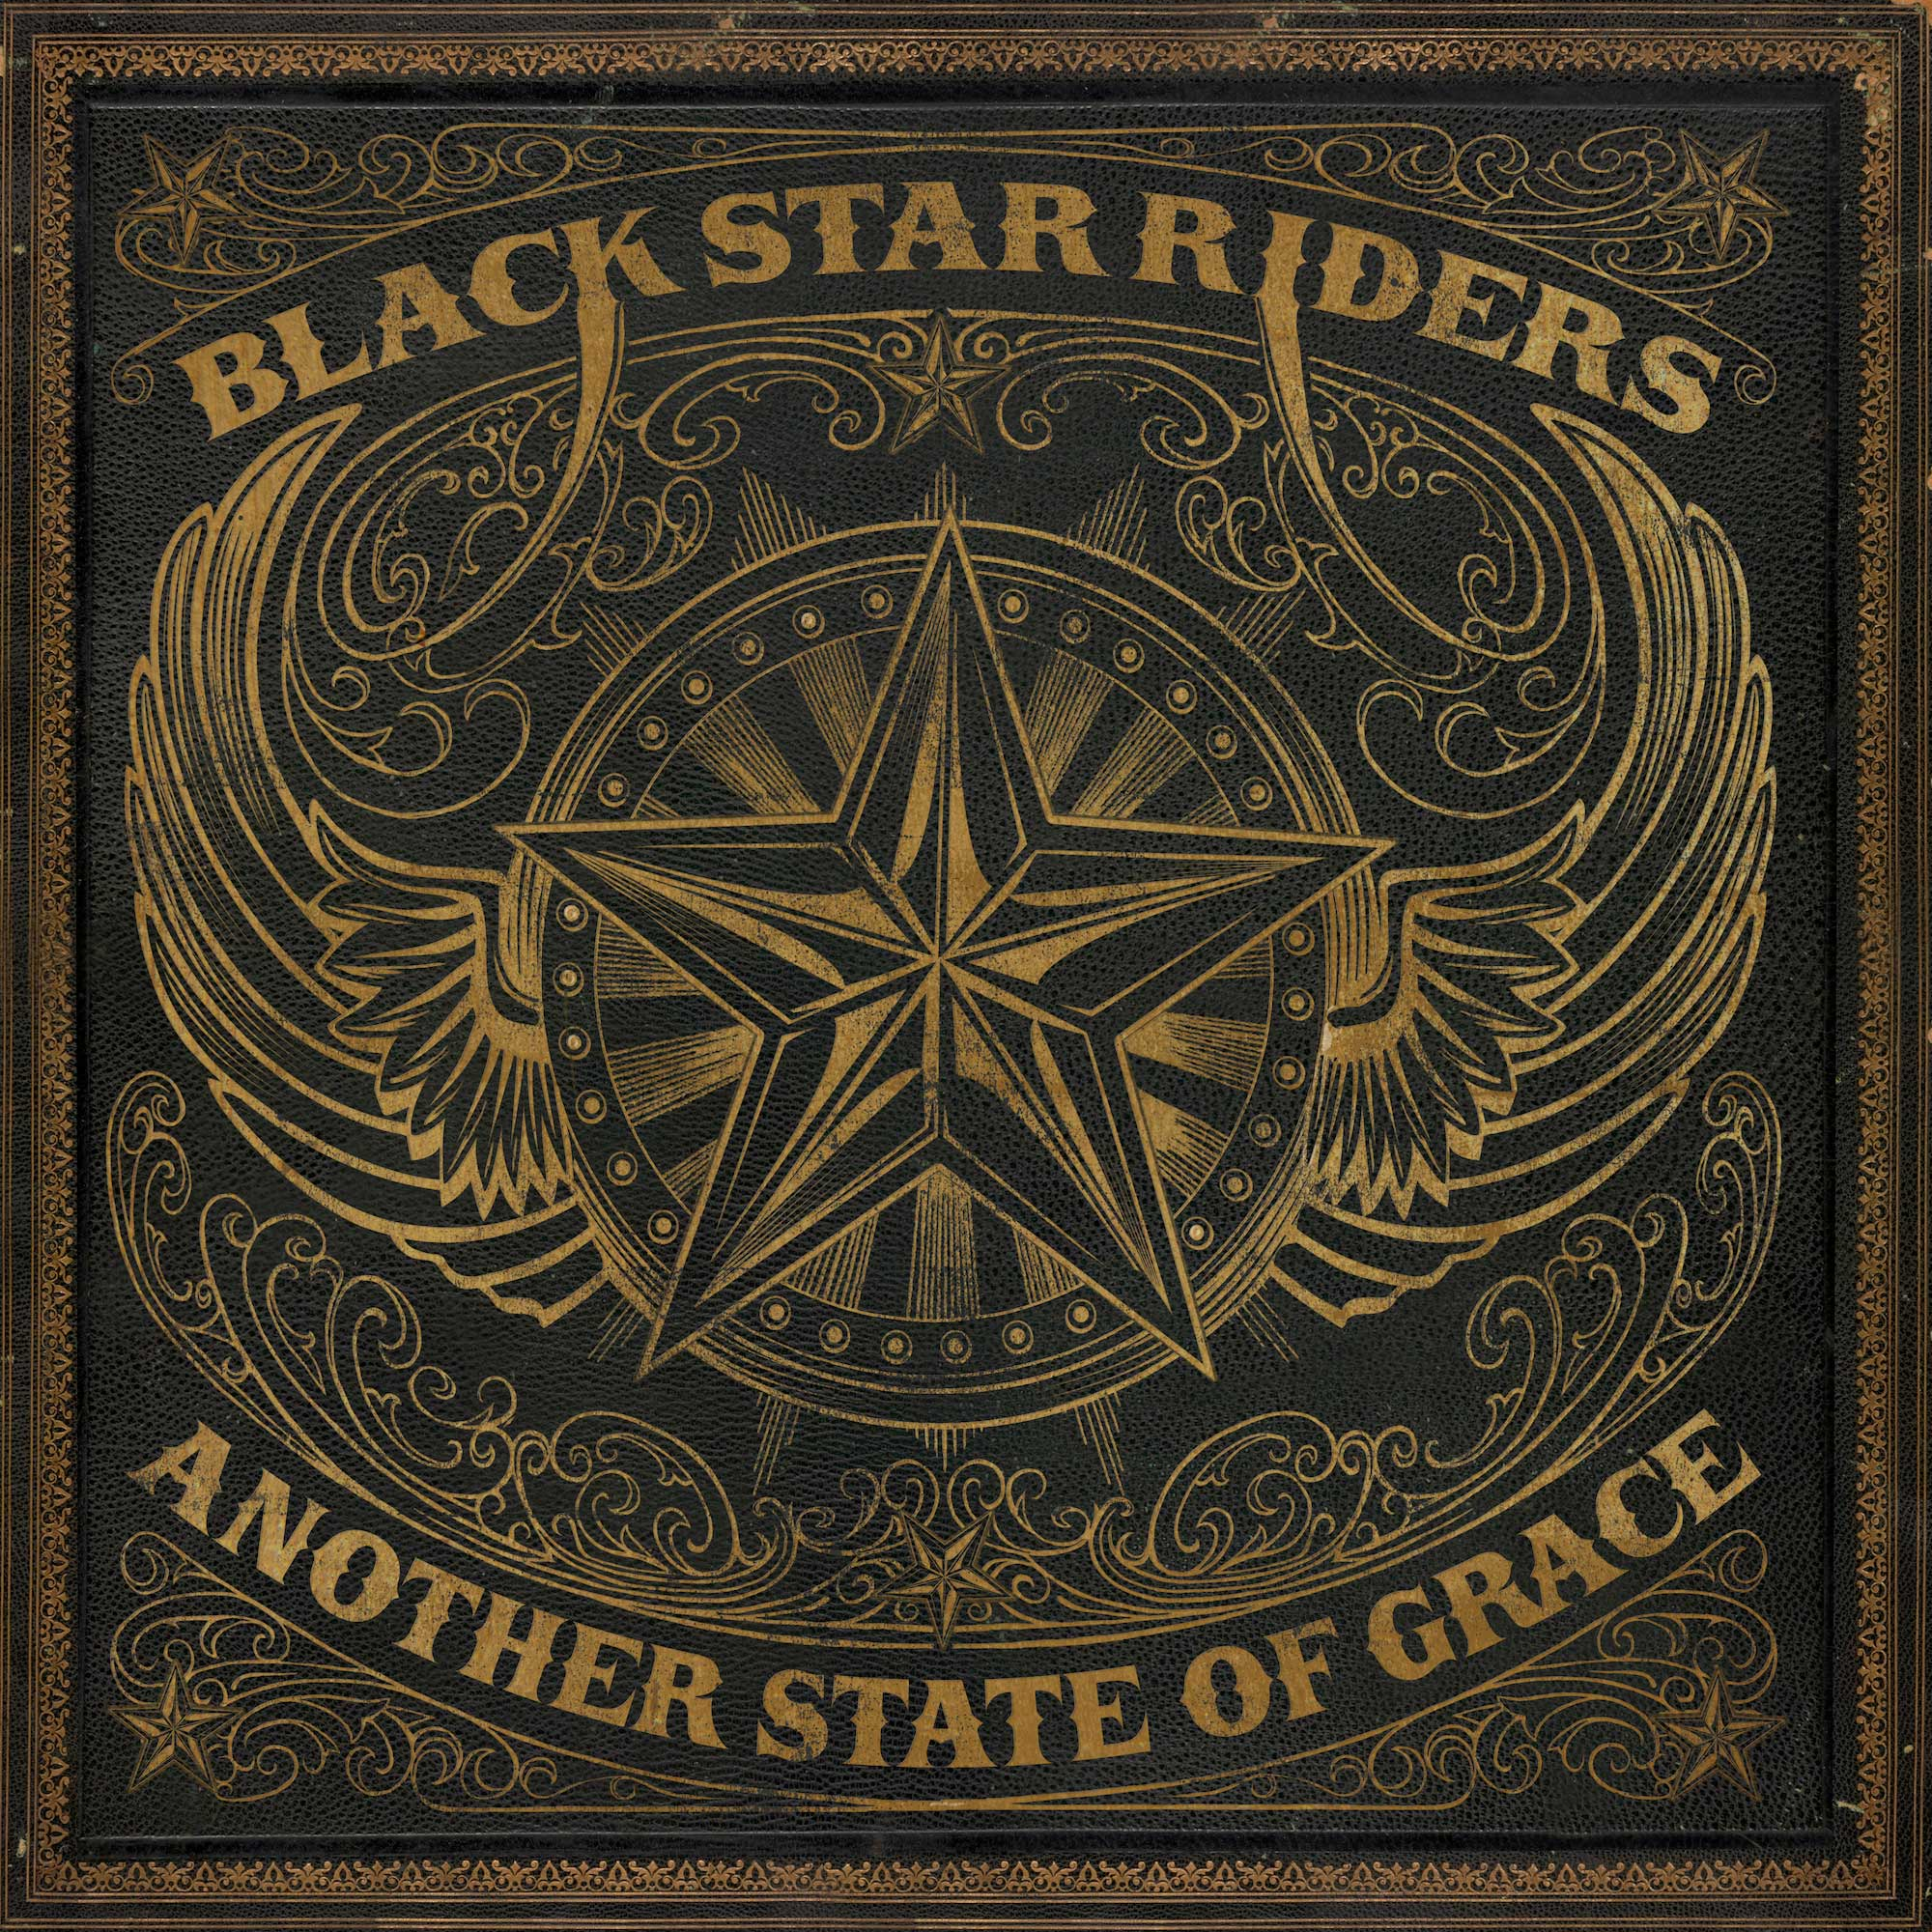 Black Star Riders : Another State Of Grace